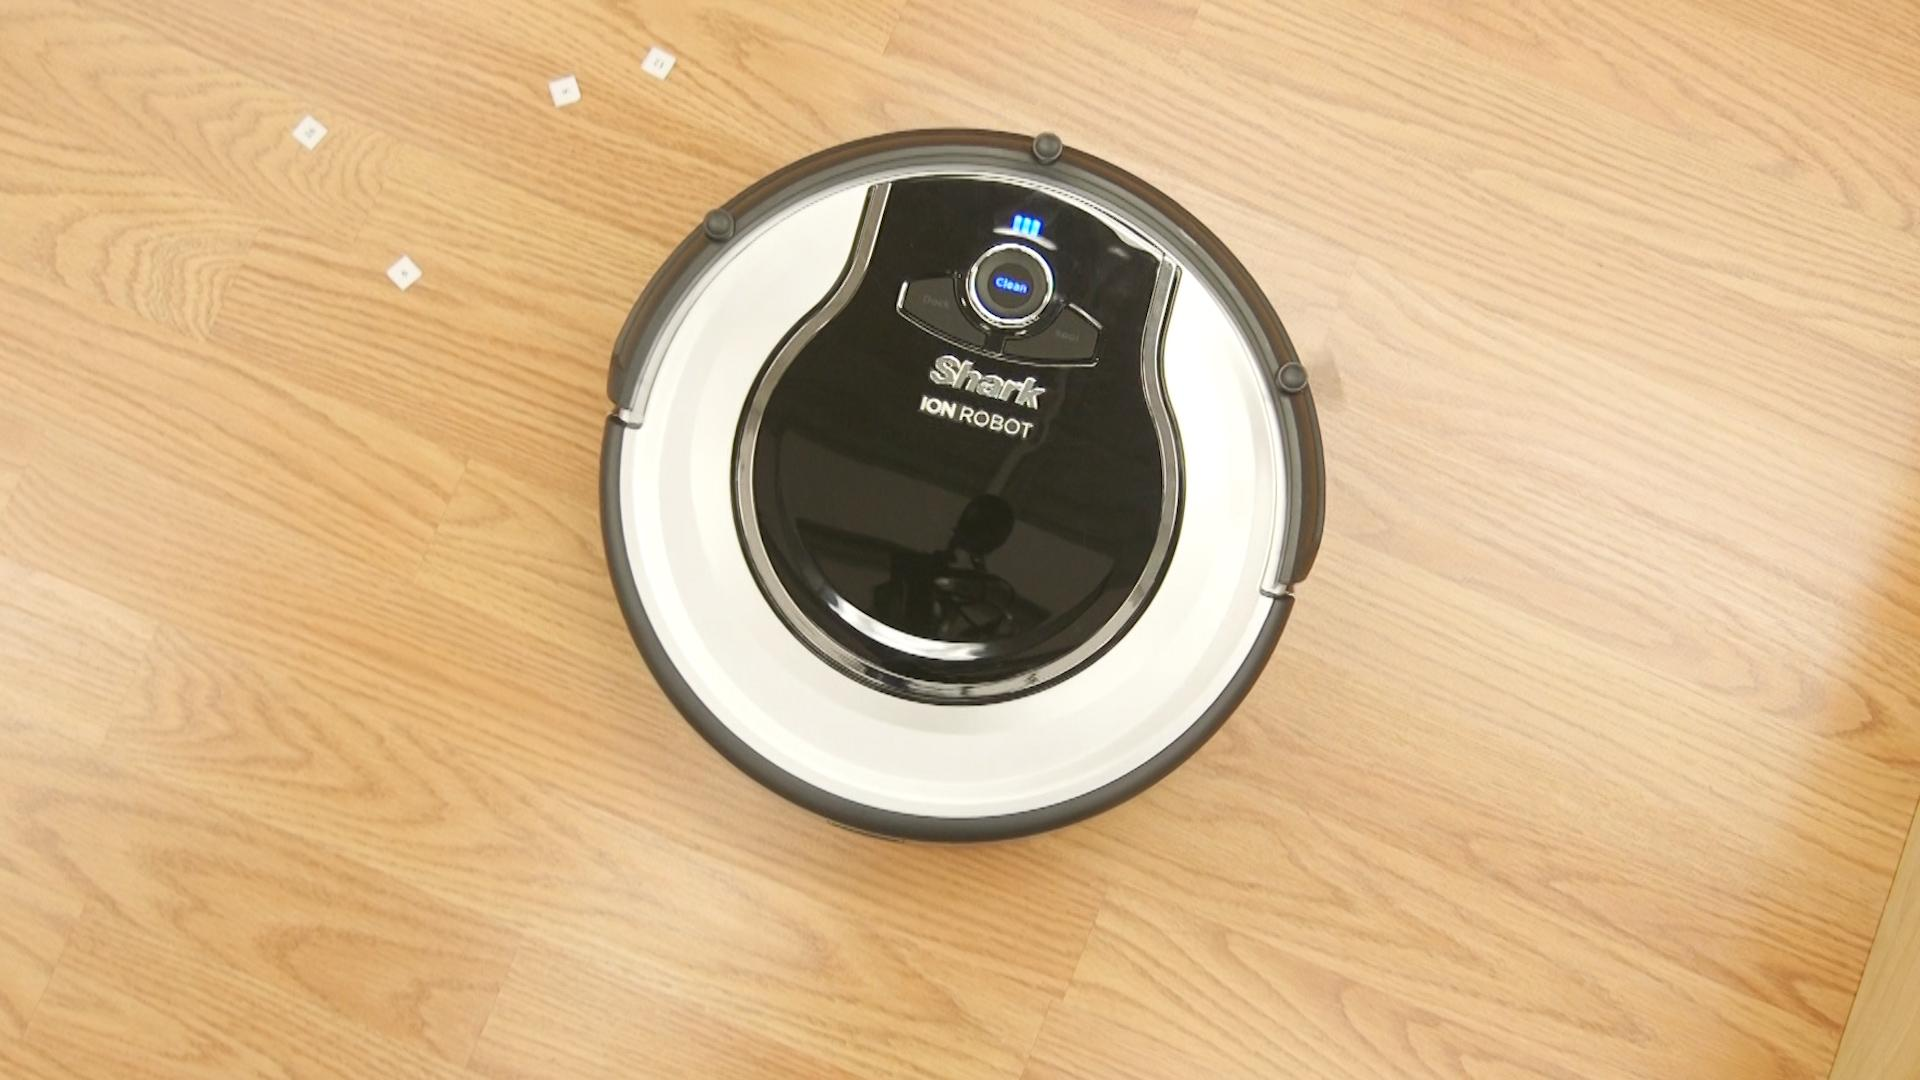 Best Robotic Vacuums for $300 or Less - Consumer Reports